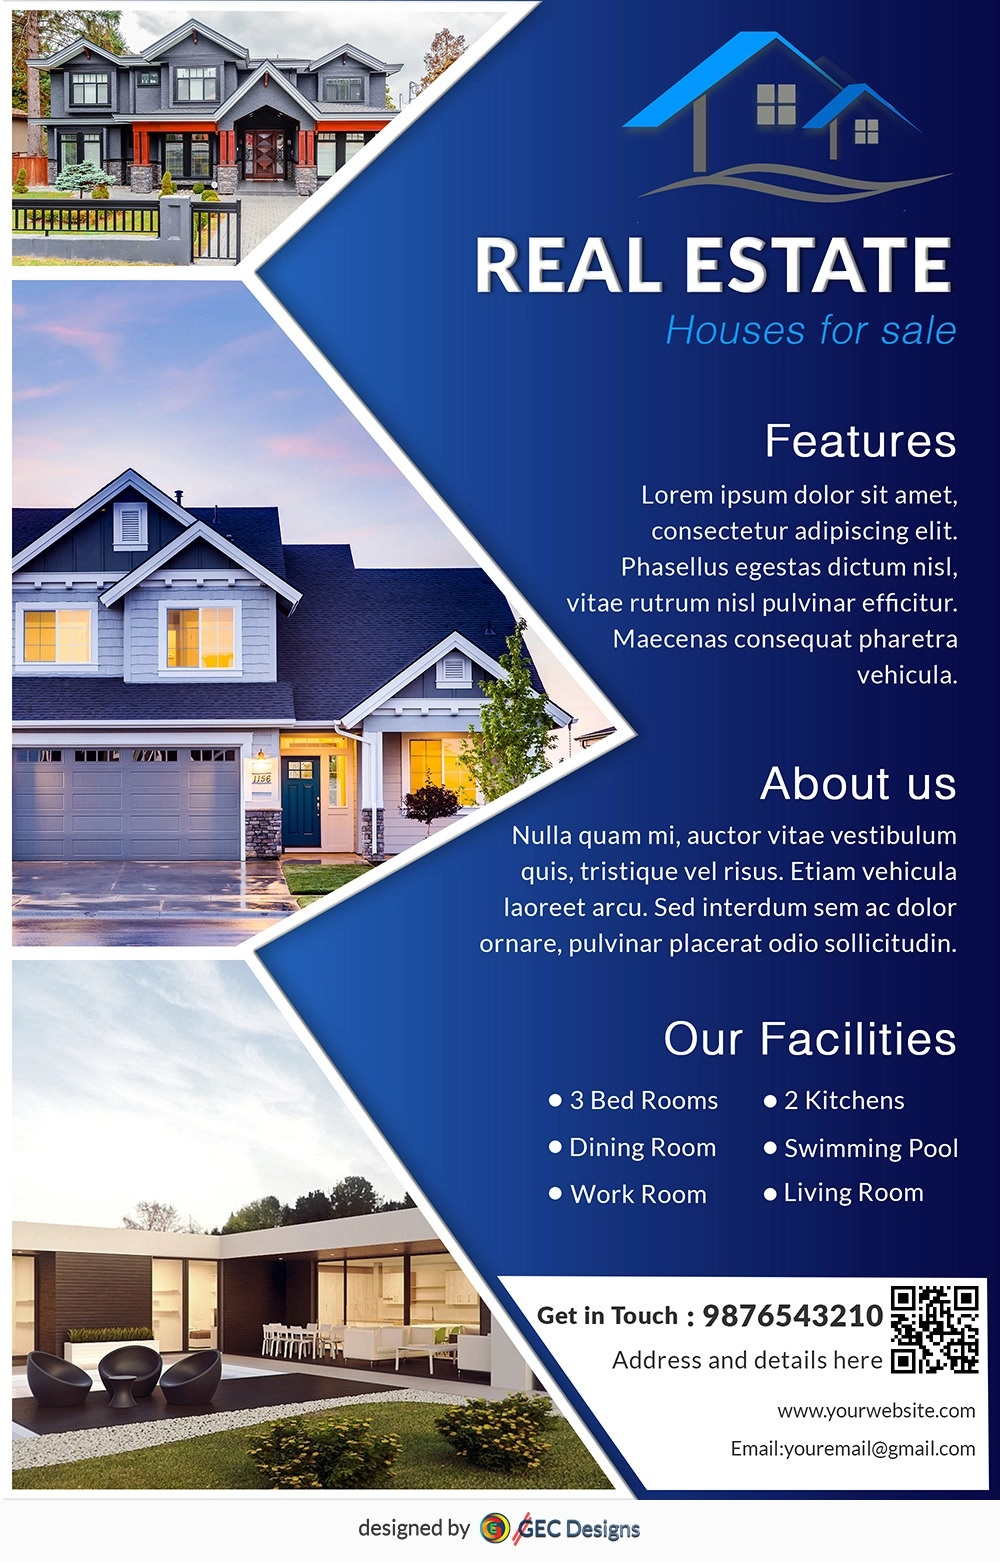 004 Awesome Real Estate Marketing Flyer Template Free High Resolution Full